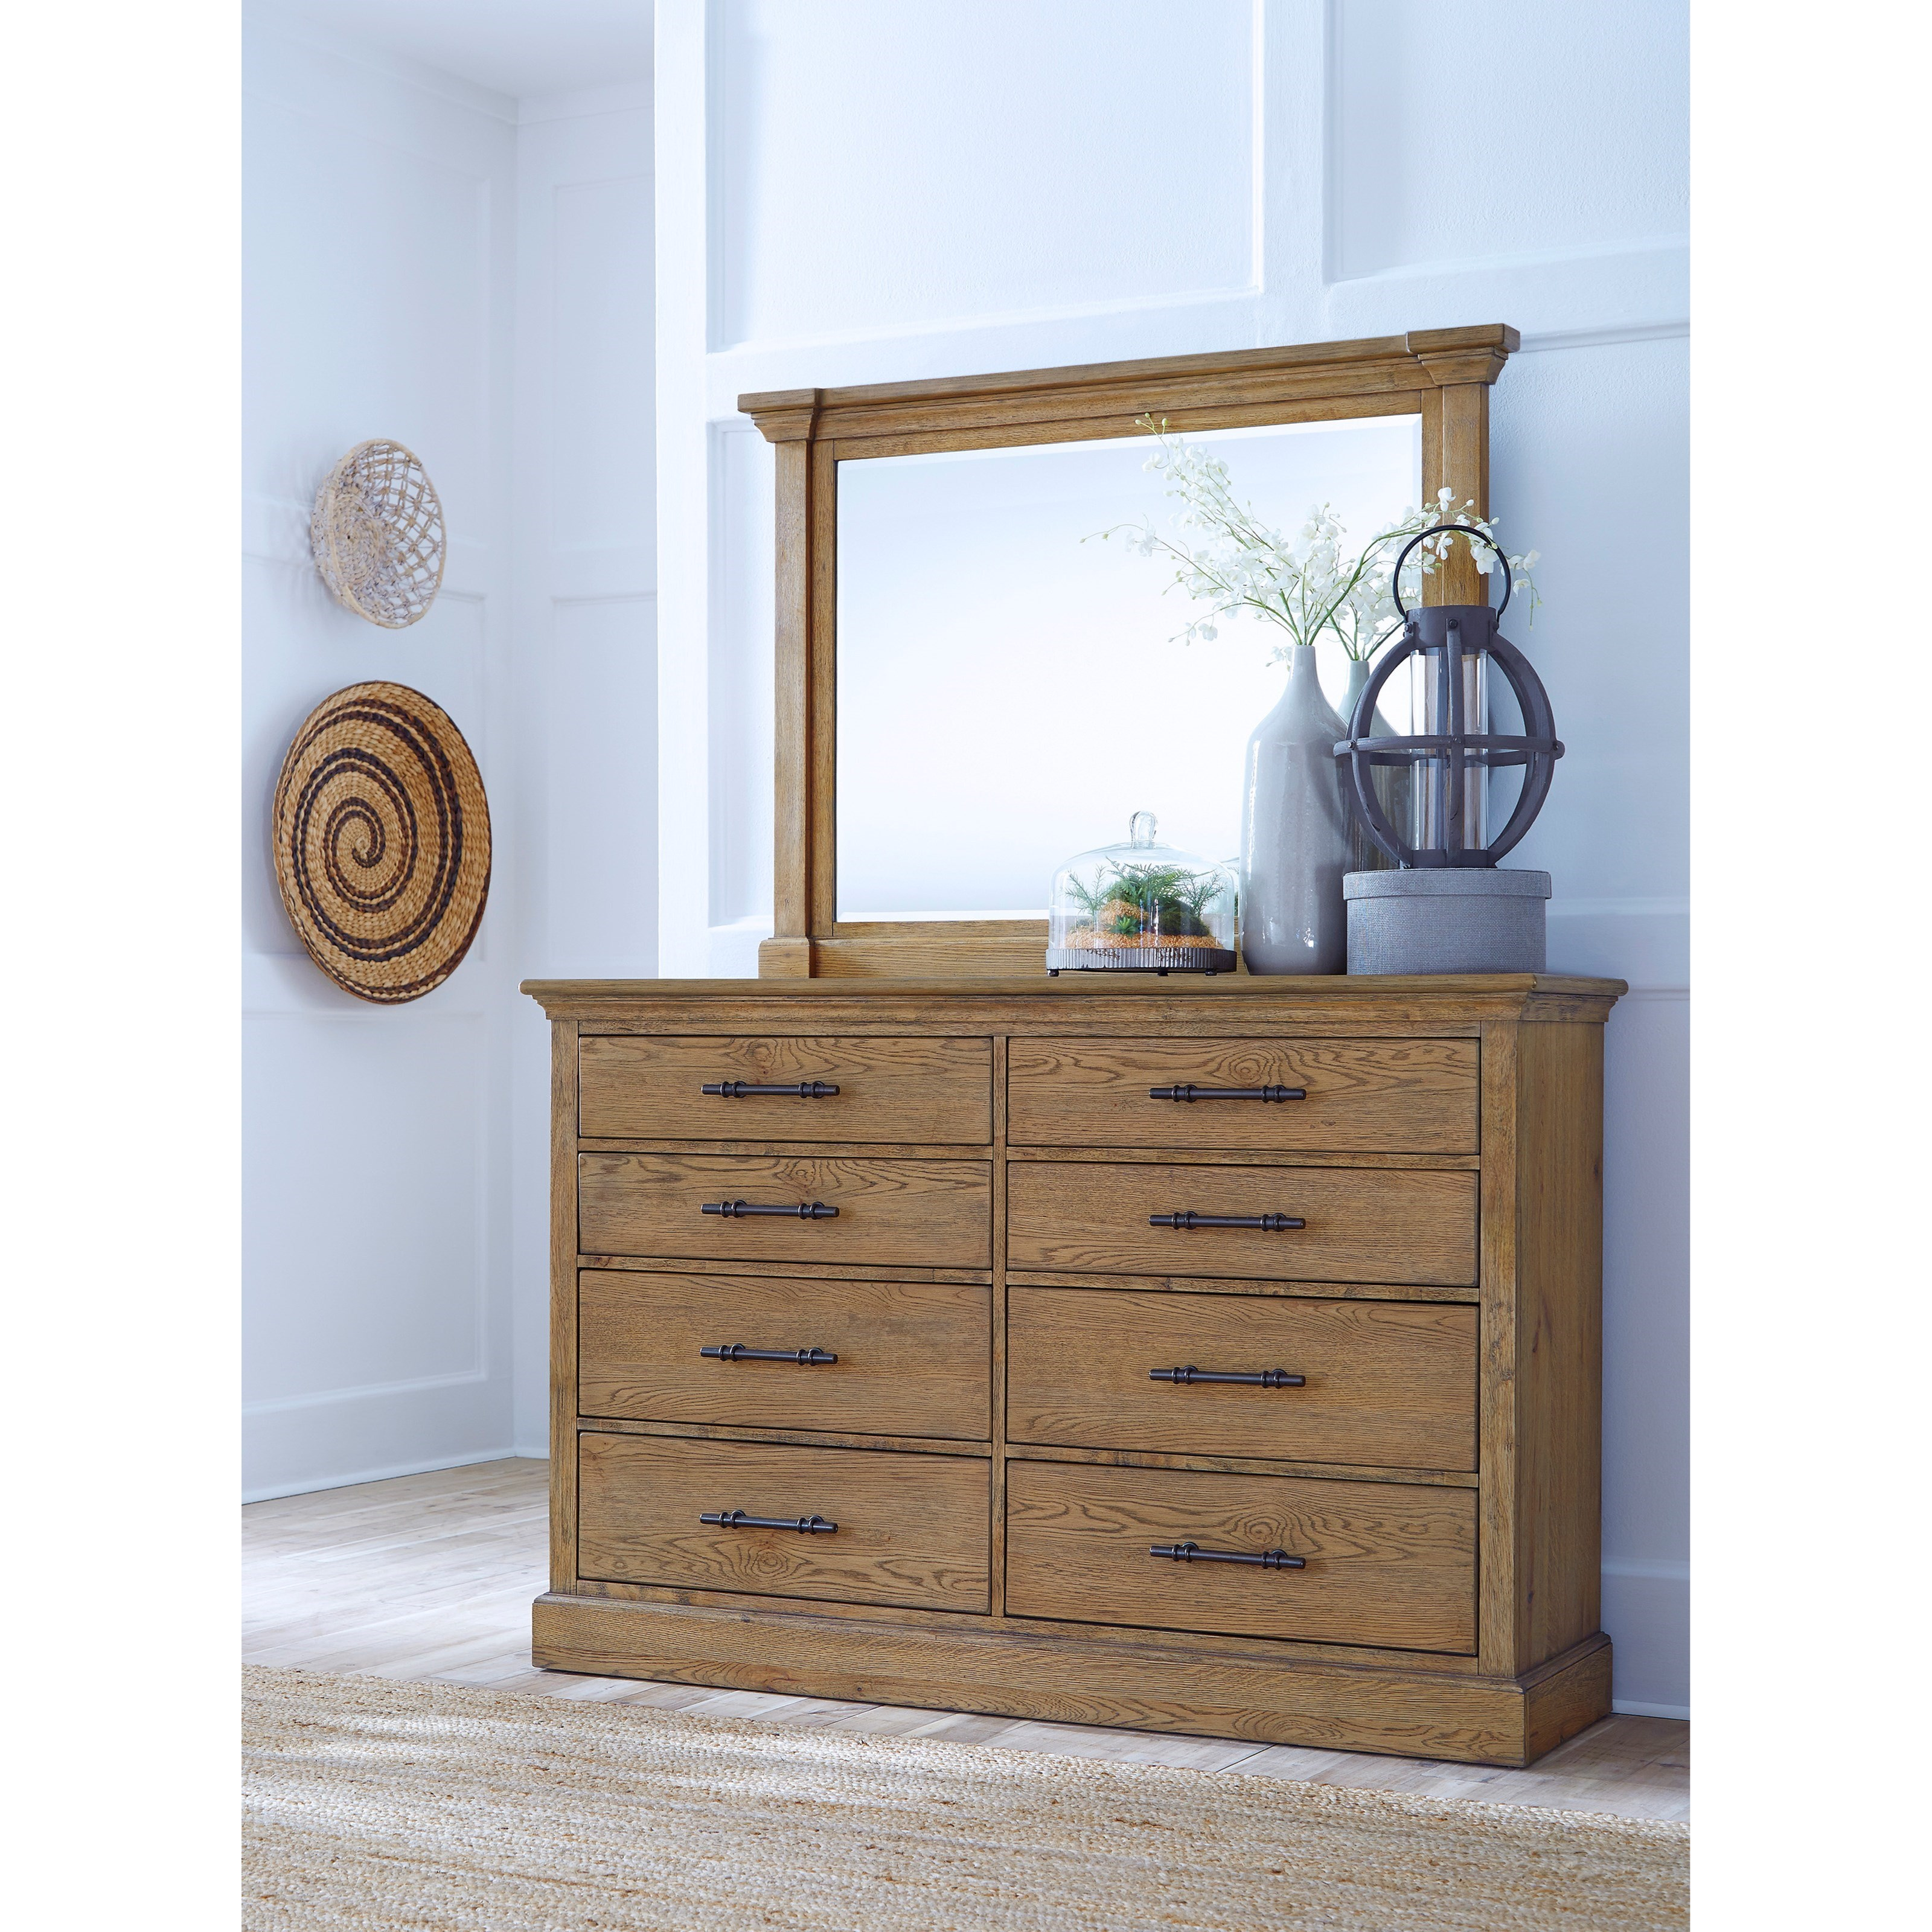 Manchester 8 Drawer Dresser and Mirror Set by Aspenhome at Stoney Creek Furniture